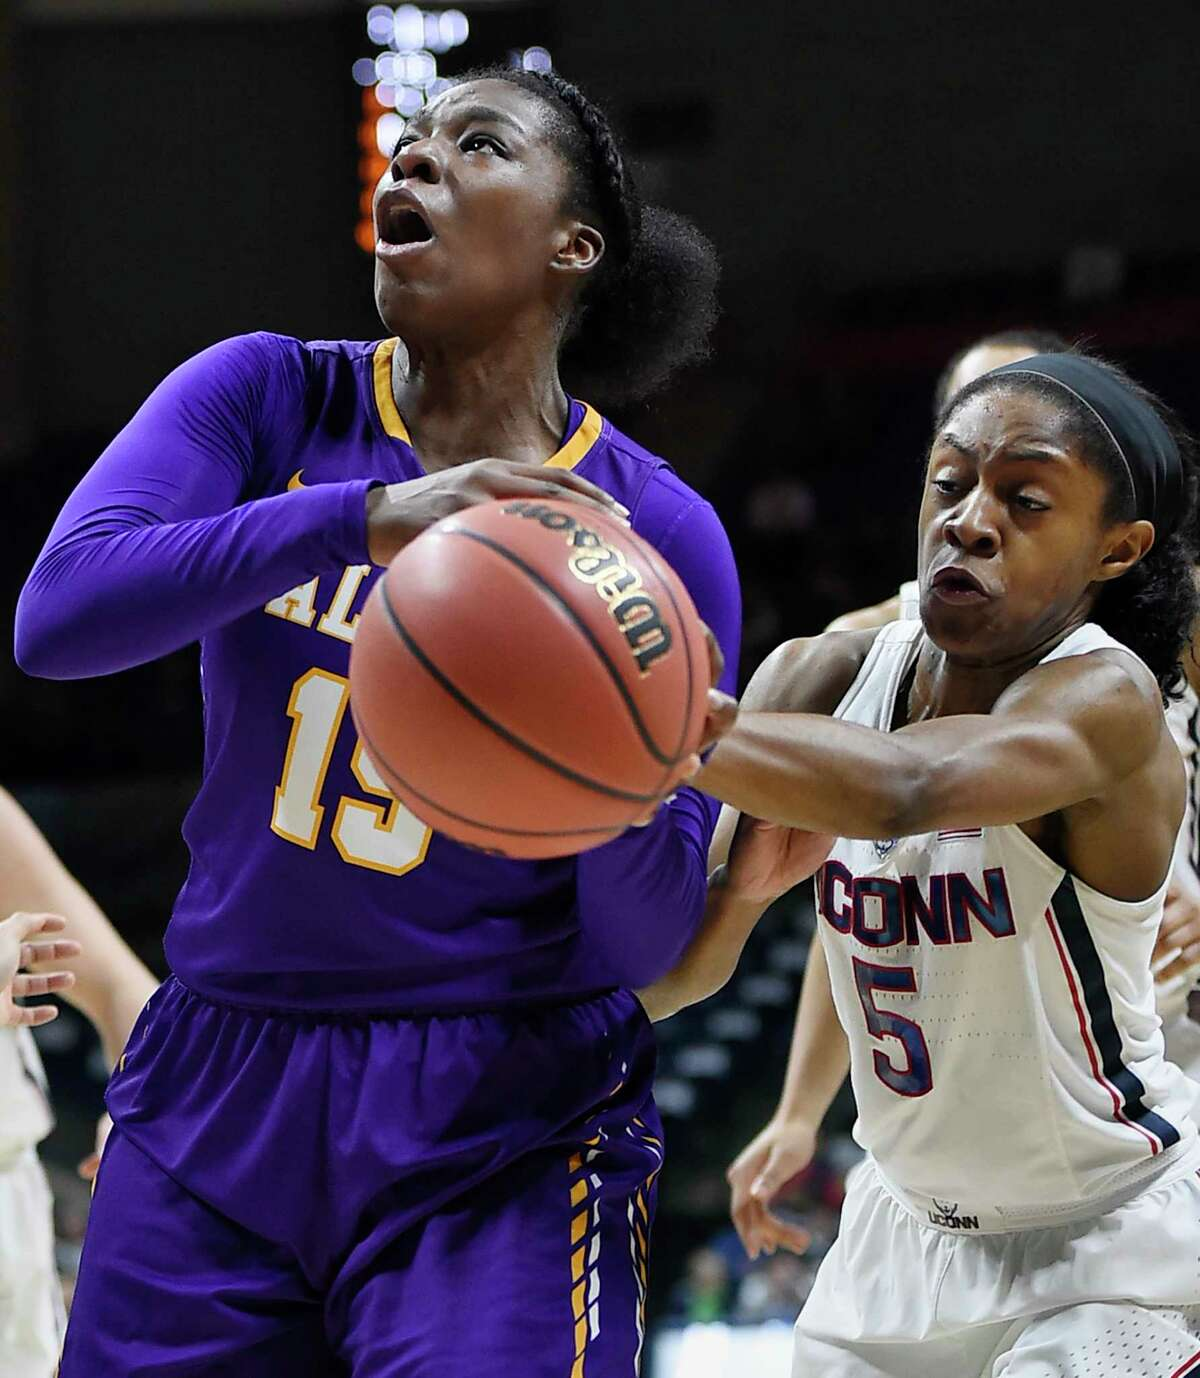 Connecticut's Crystal Dangerfield, right, reaches for the ball as Albany's Jessica Féquiere, left, shoots during the first half of a first round round of a women's college basketball game in the NCAA Tournament, Saturday, March 18, 2017, in Storrs, Conn. (AP Photo/Jessica Hill) ORG XMIT: CTJH107